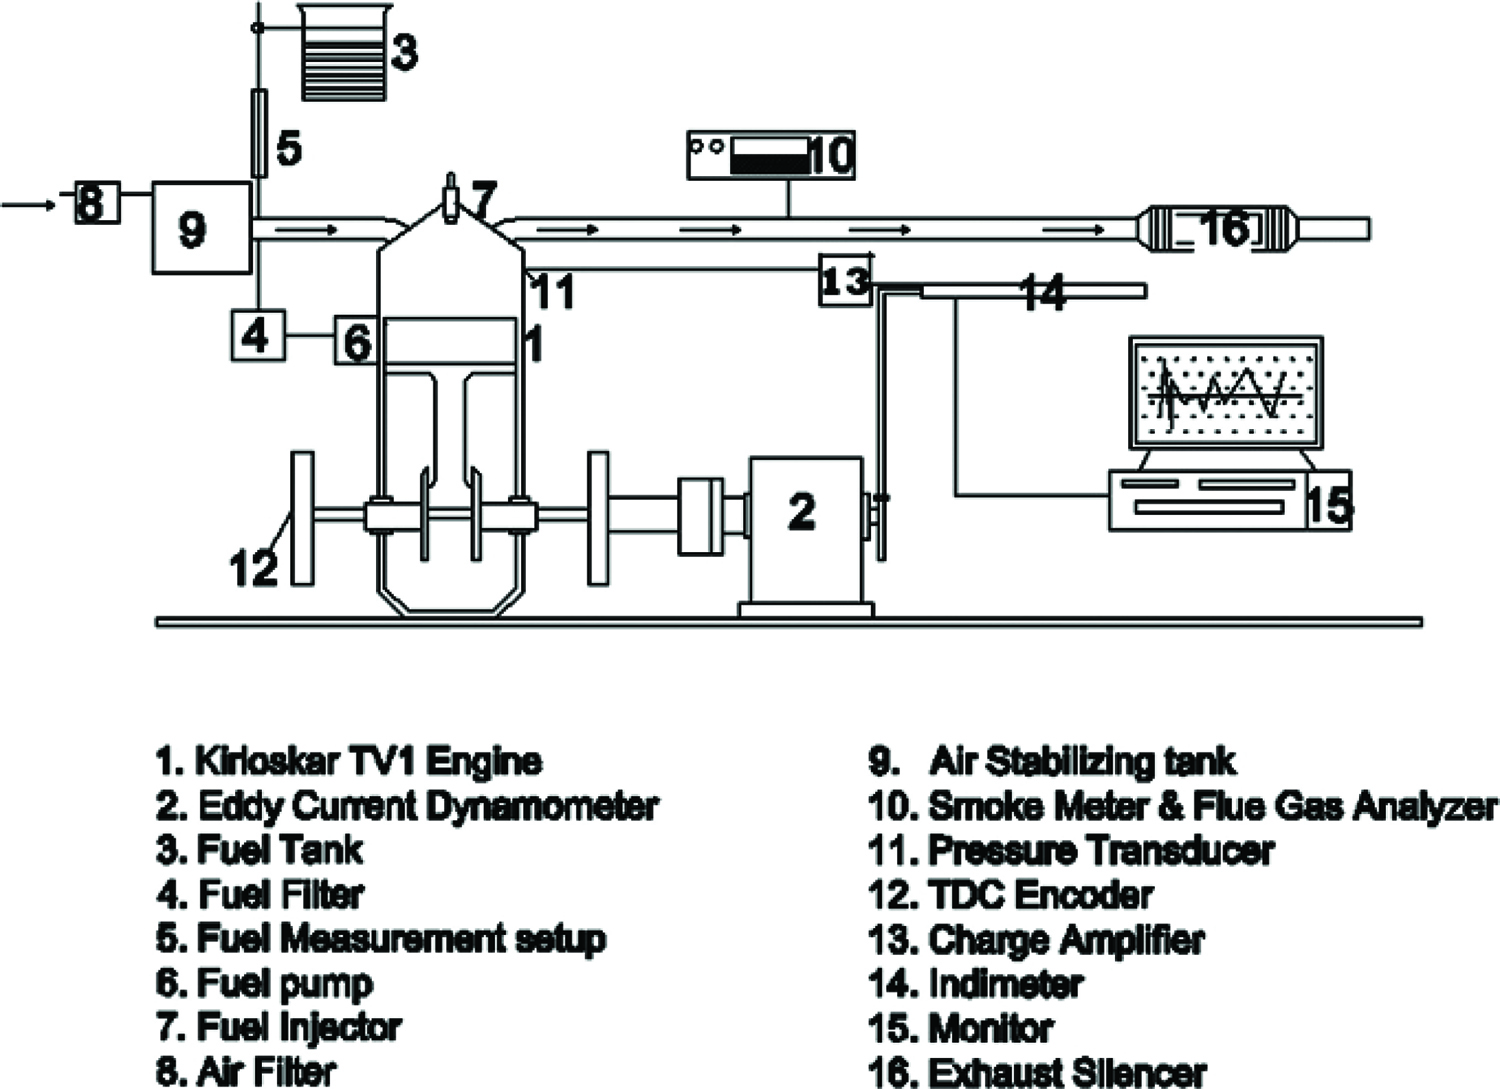 hight resolution of 1 layout of engine and instrumentation set up